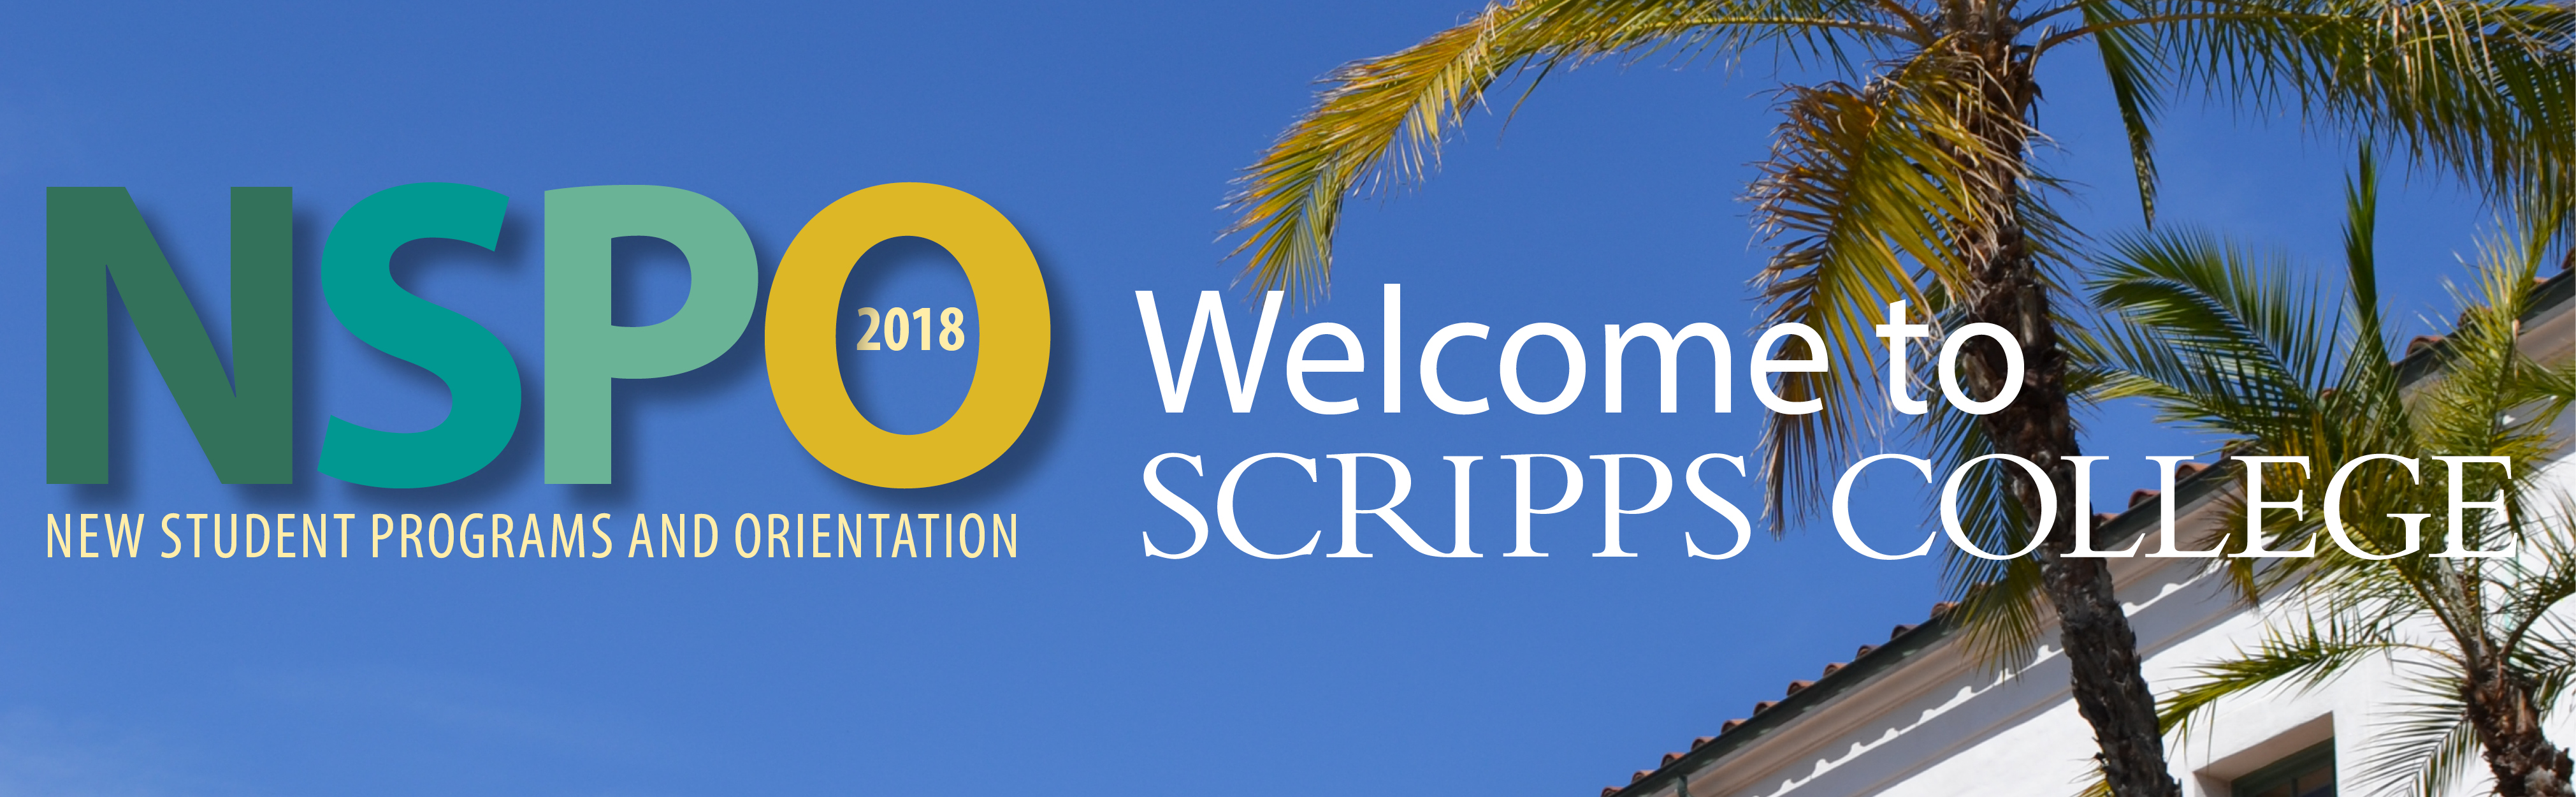 Orientation Schedule Checklist Housing LiveSafe App Academic Experience   Pre-Orientation Programs   Finding Community   Scripps Resources and The Claremont Colleges Services   Scripps 360°   Getting to Scripps